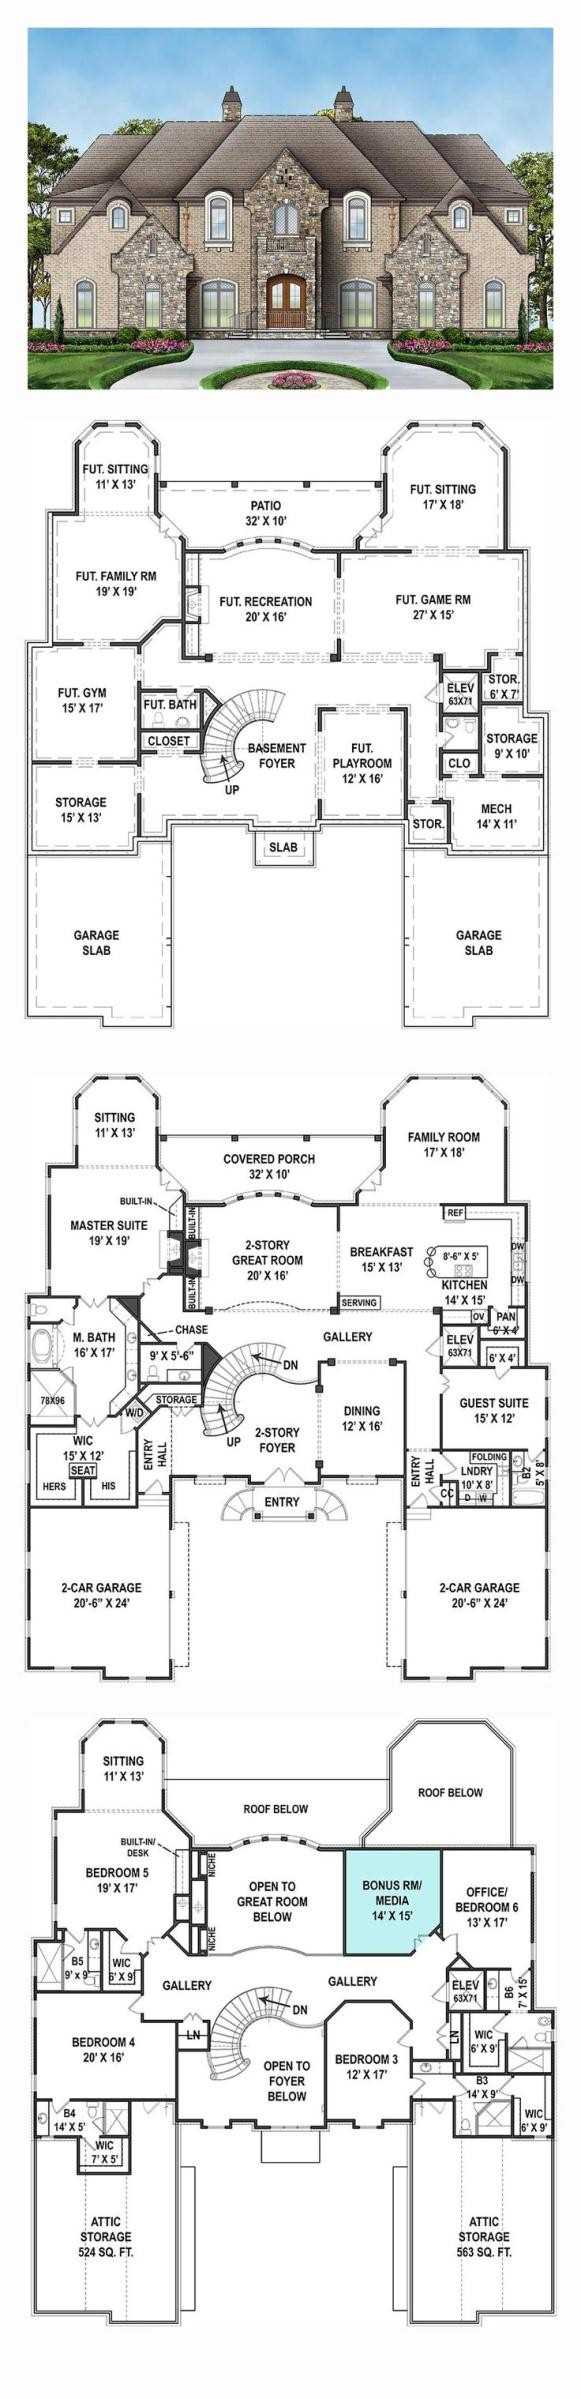 Sophisticated Average Cost of Master Suite Addition | Fresh Master Bedroom Addition Plans